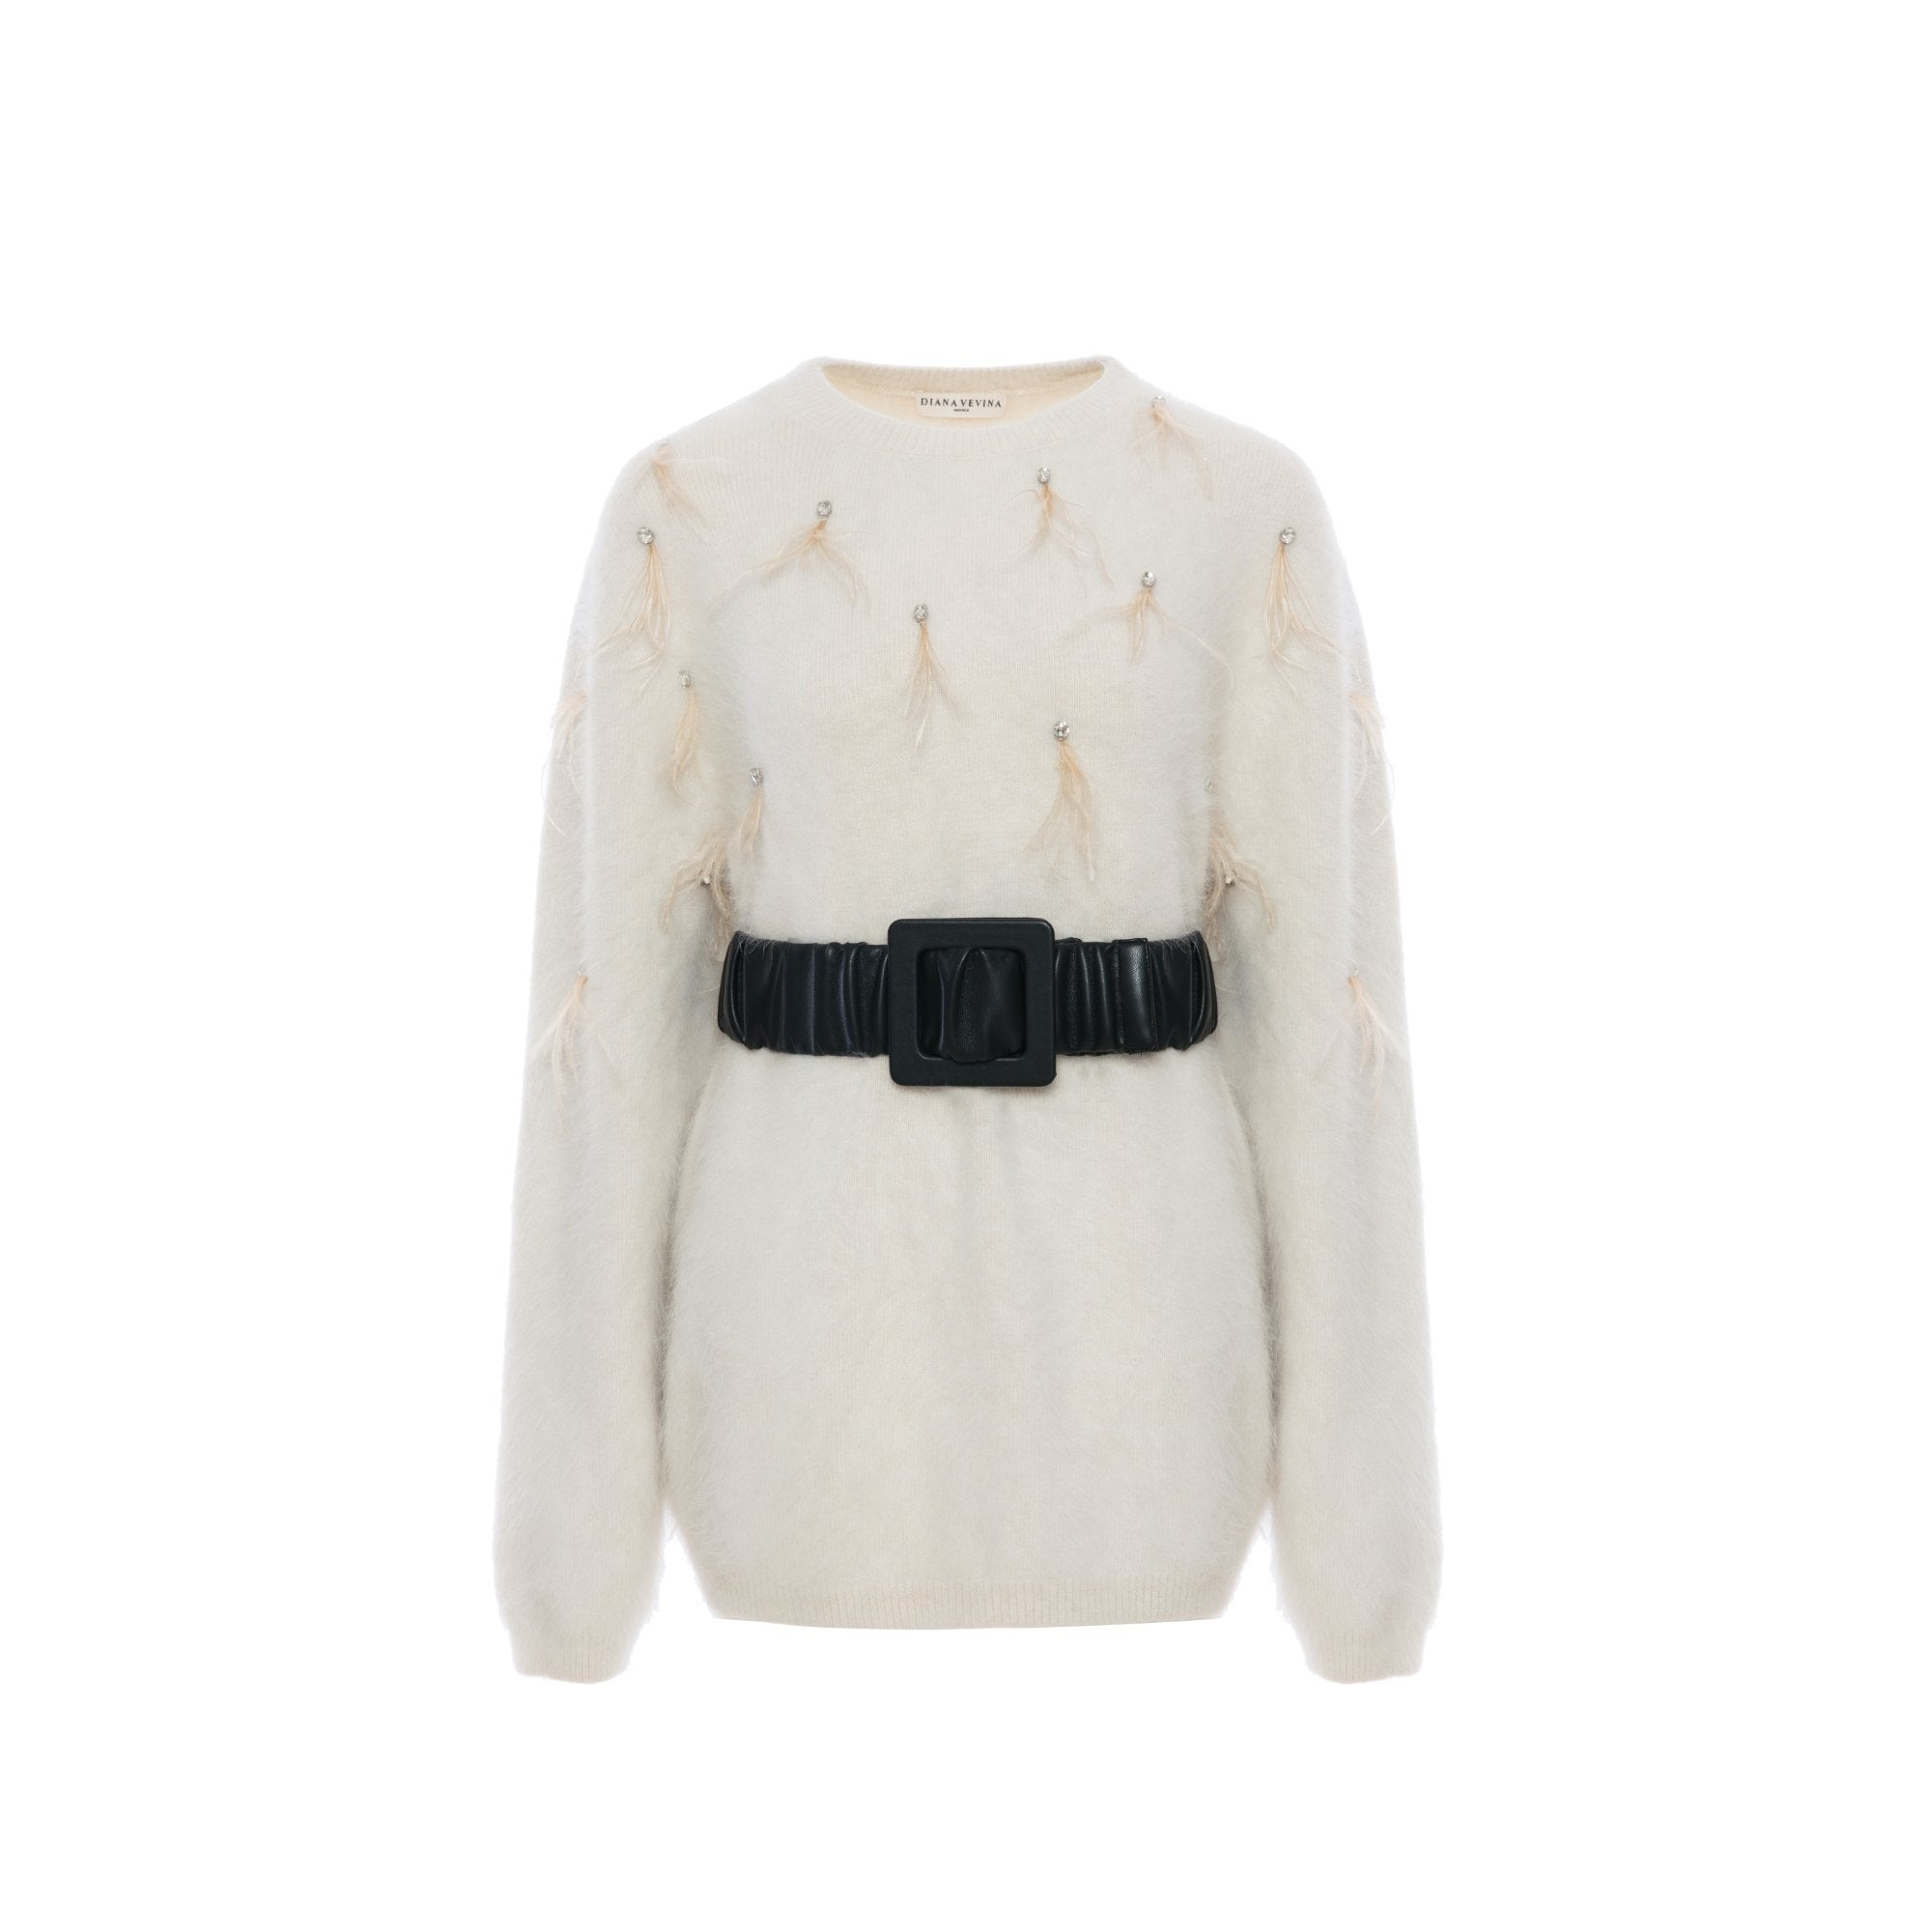 DIANA VEVINA White Belt Sweatshirt | MADA IN CHINA